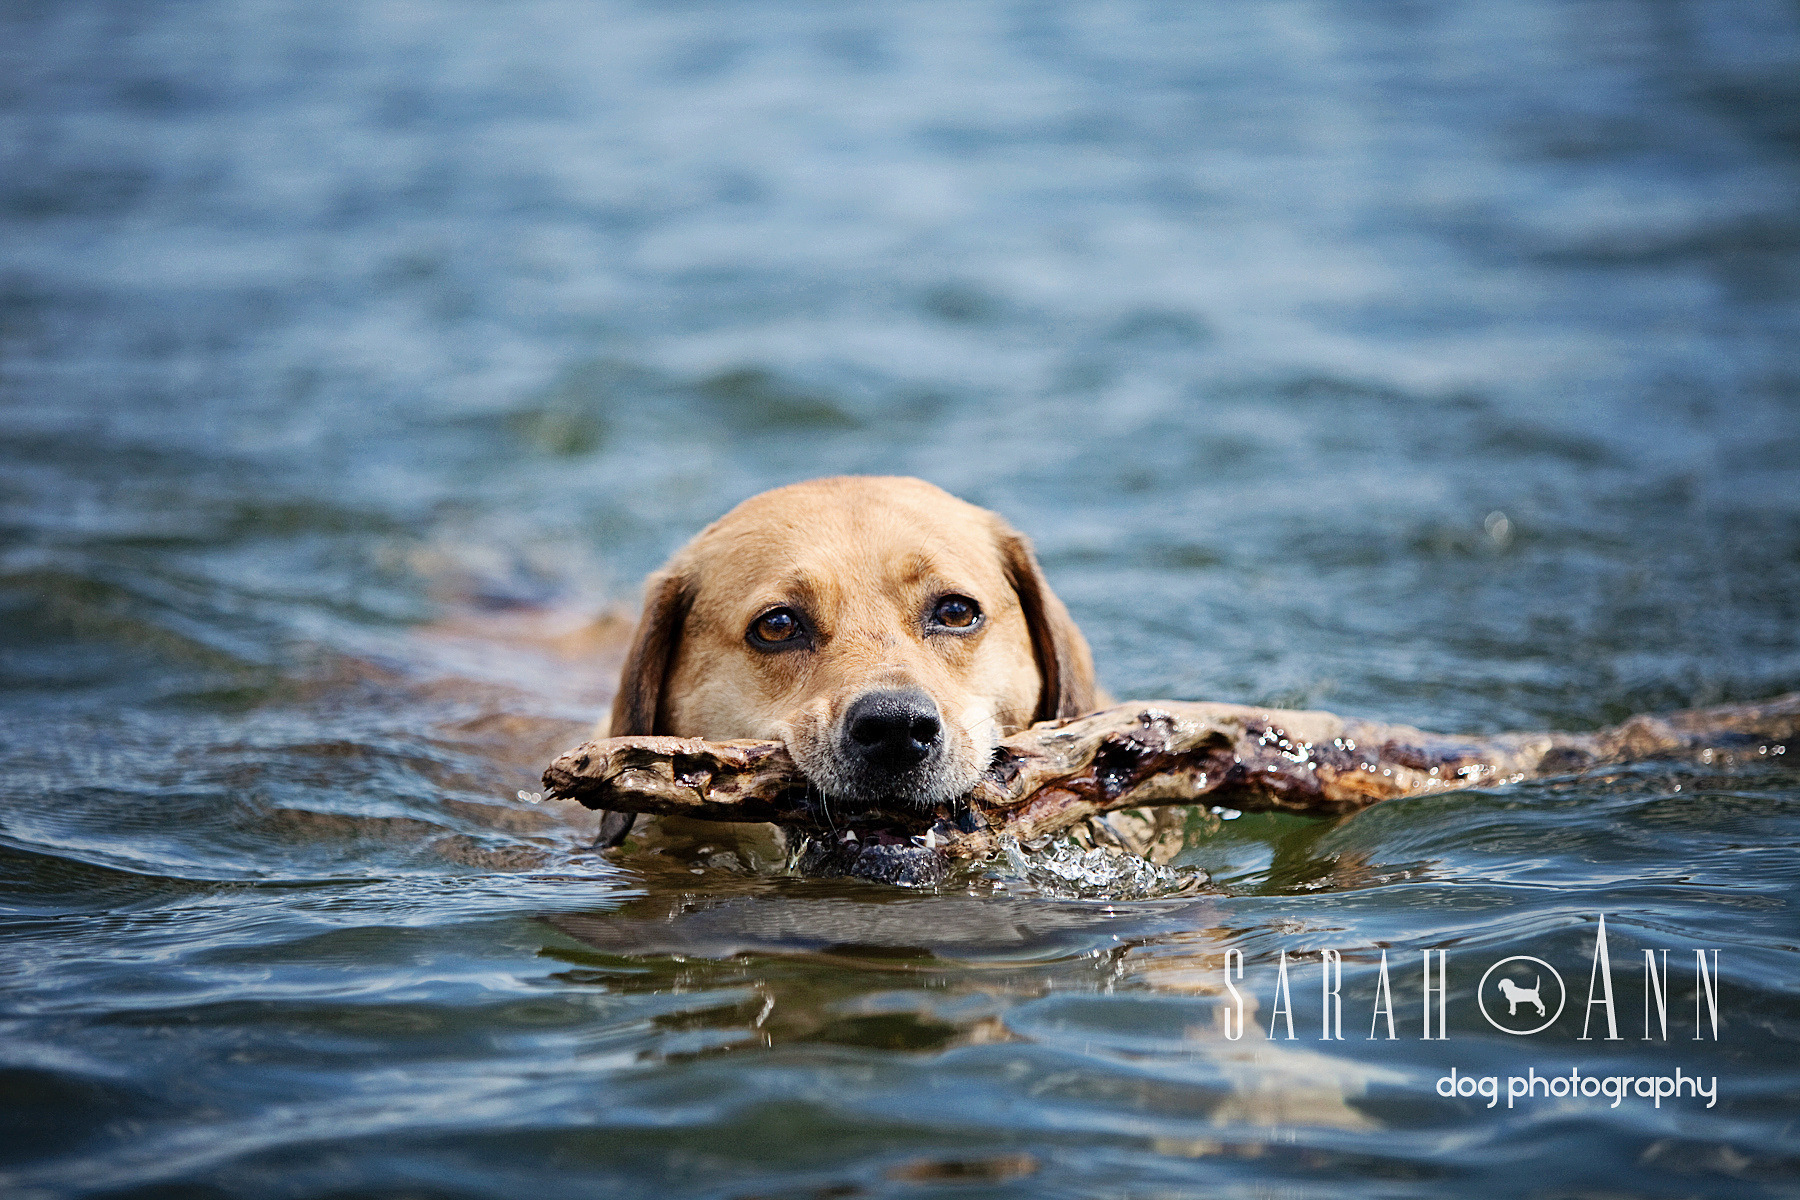 dogs_water_swimming_image_pet_photography_canada